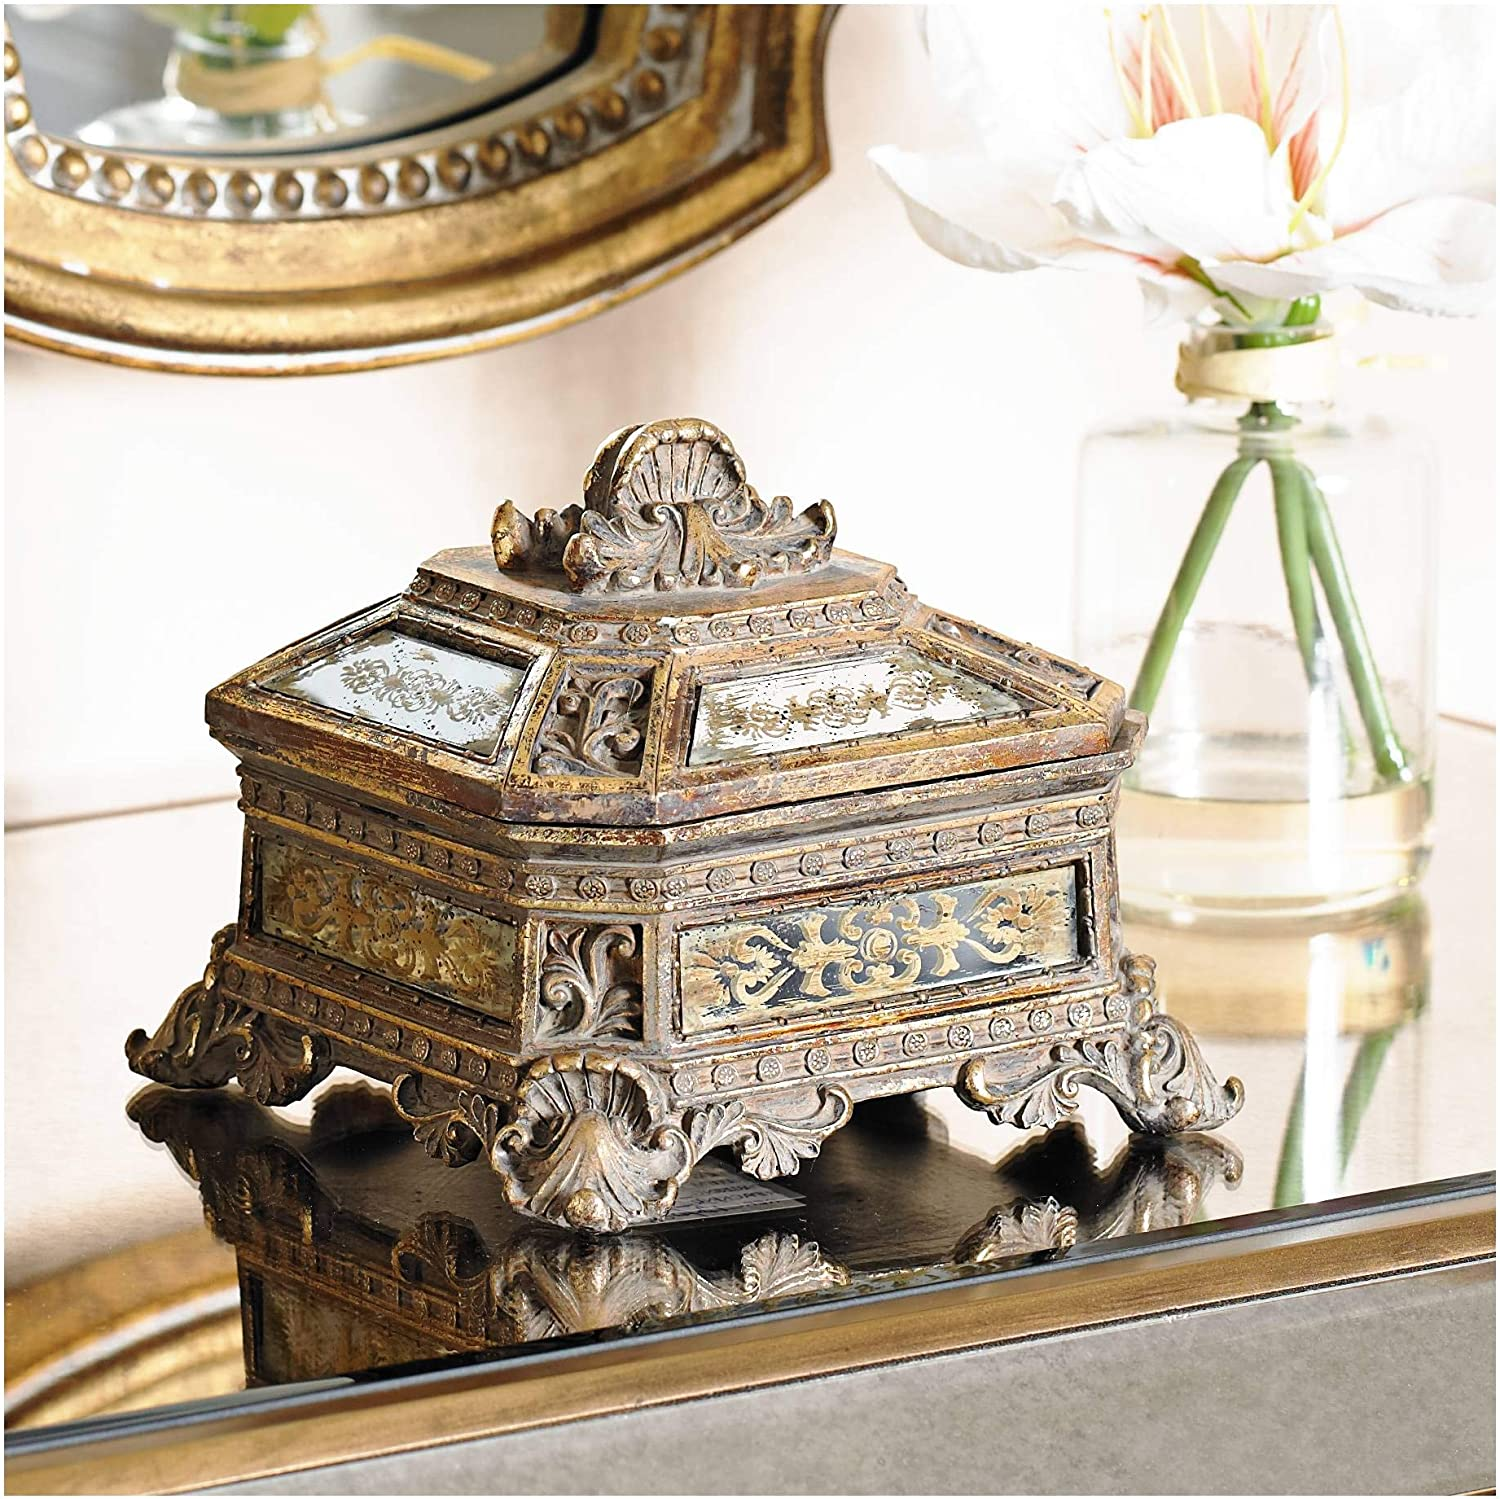 """Universal Lighting and Decor Florentine 5 3/4"""" Wide Antique Gold Mirrored Jewelry Box - Kensington Hill"""